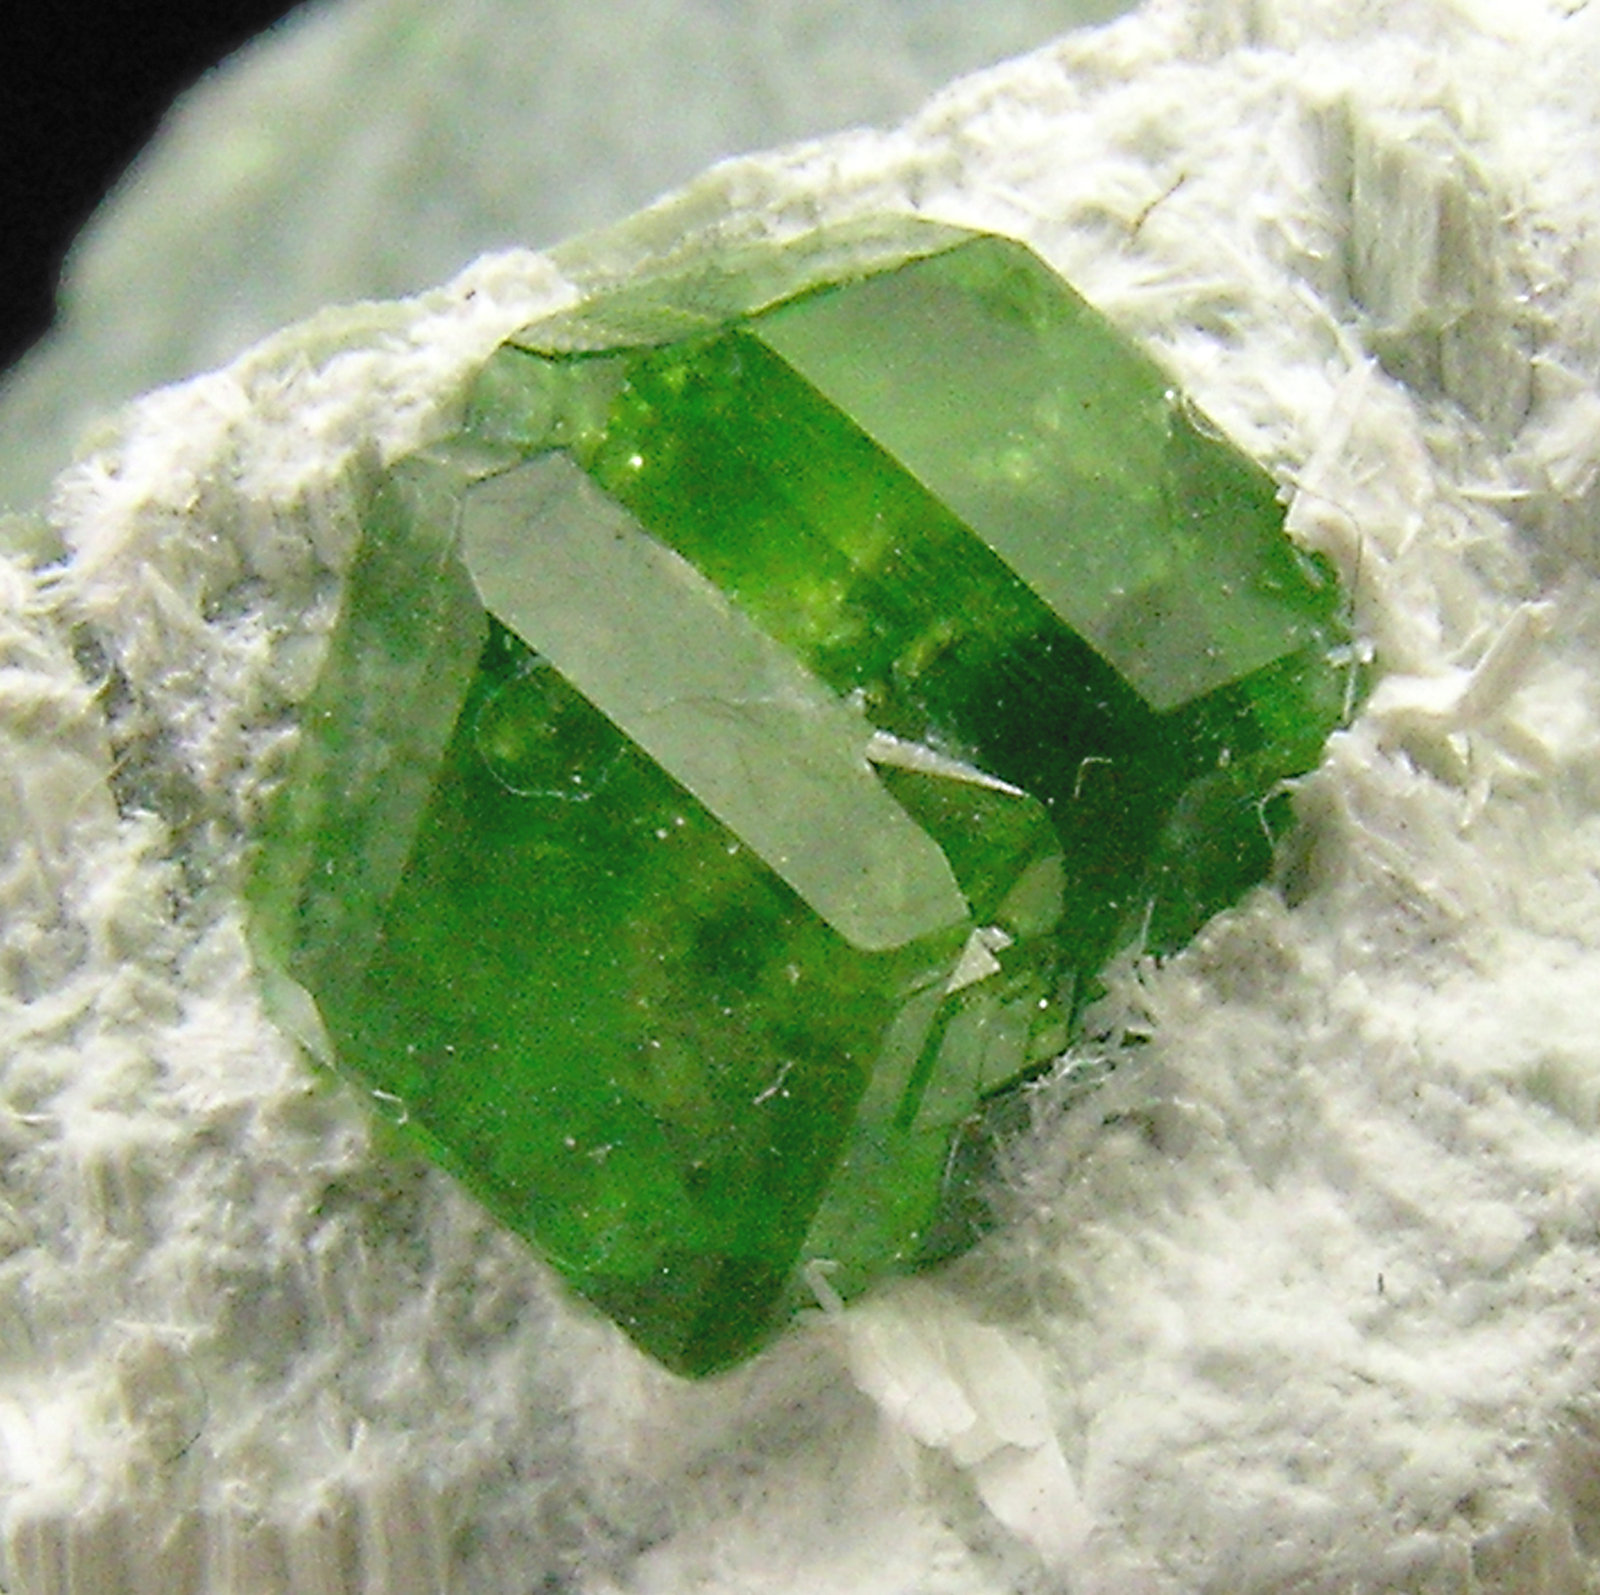 specimens/s_imagesN8/Andradite_Demantoid-TV17N8d.jpg